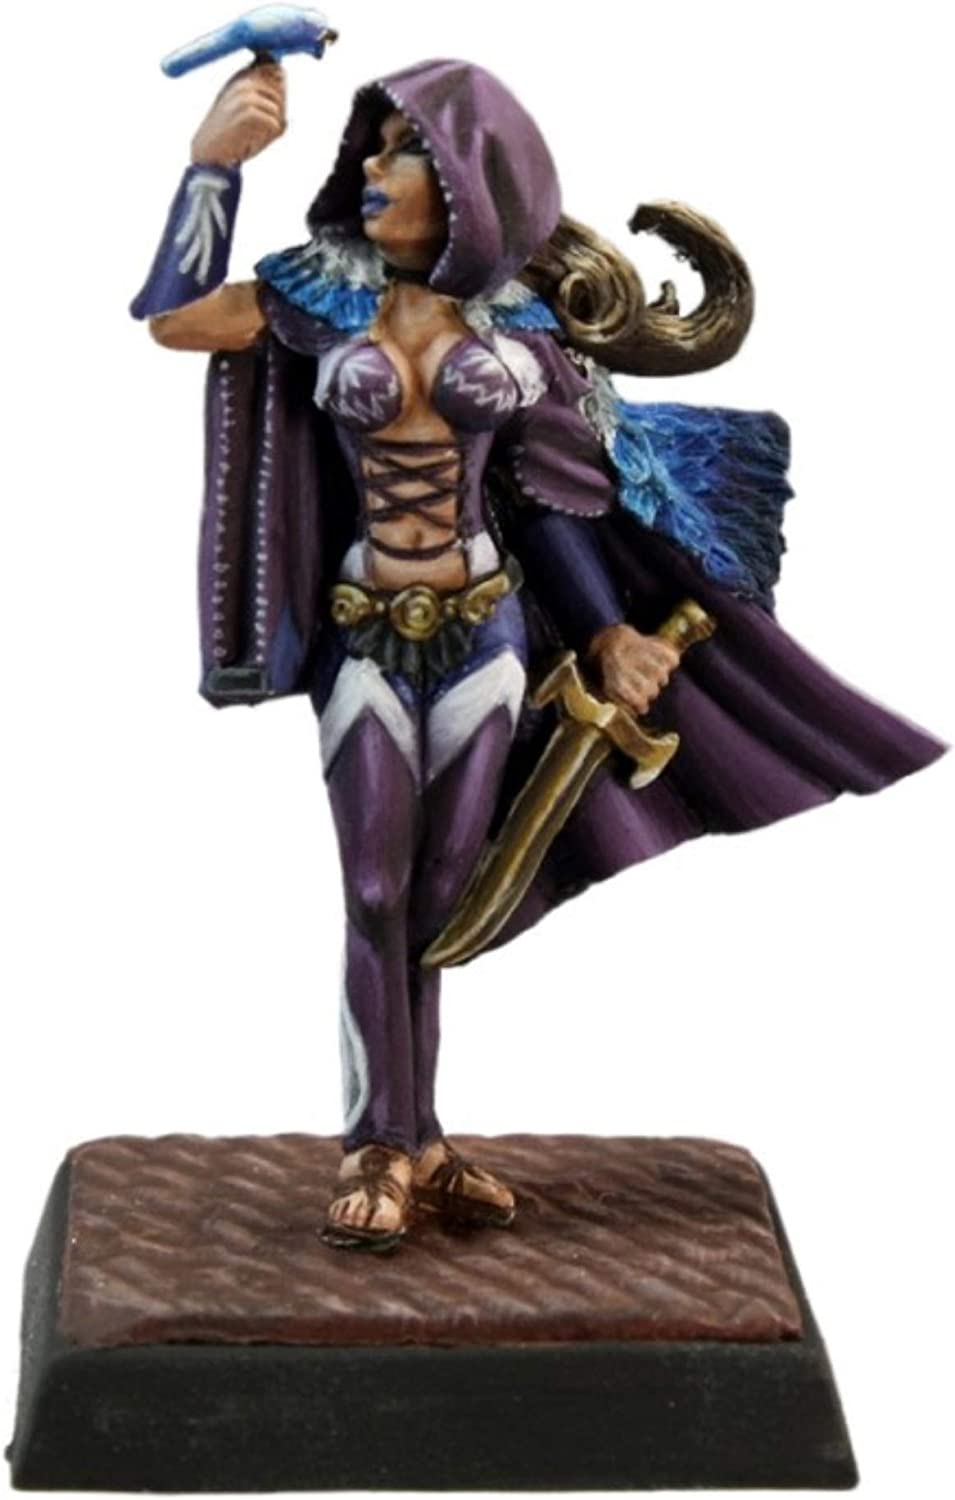 Amazon.com: Reaper Miniatures 60141 Pathfinder Series Lady ...